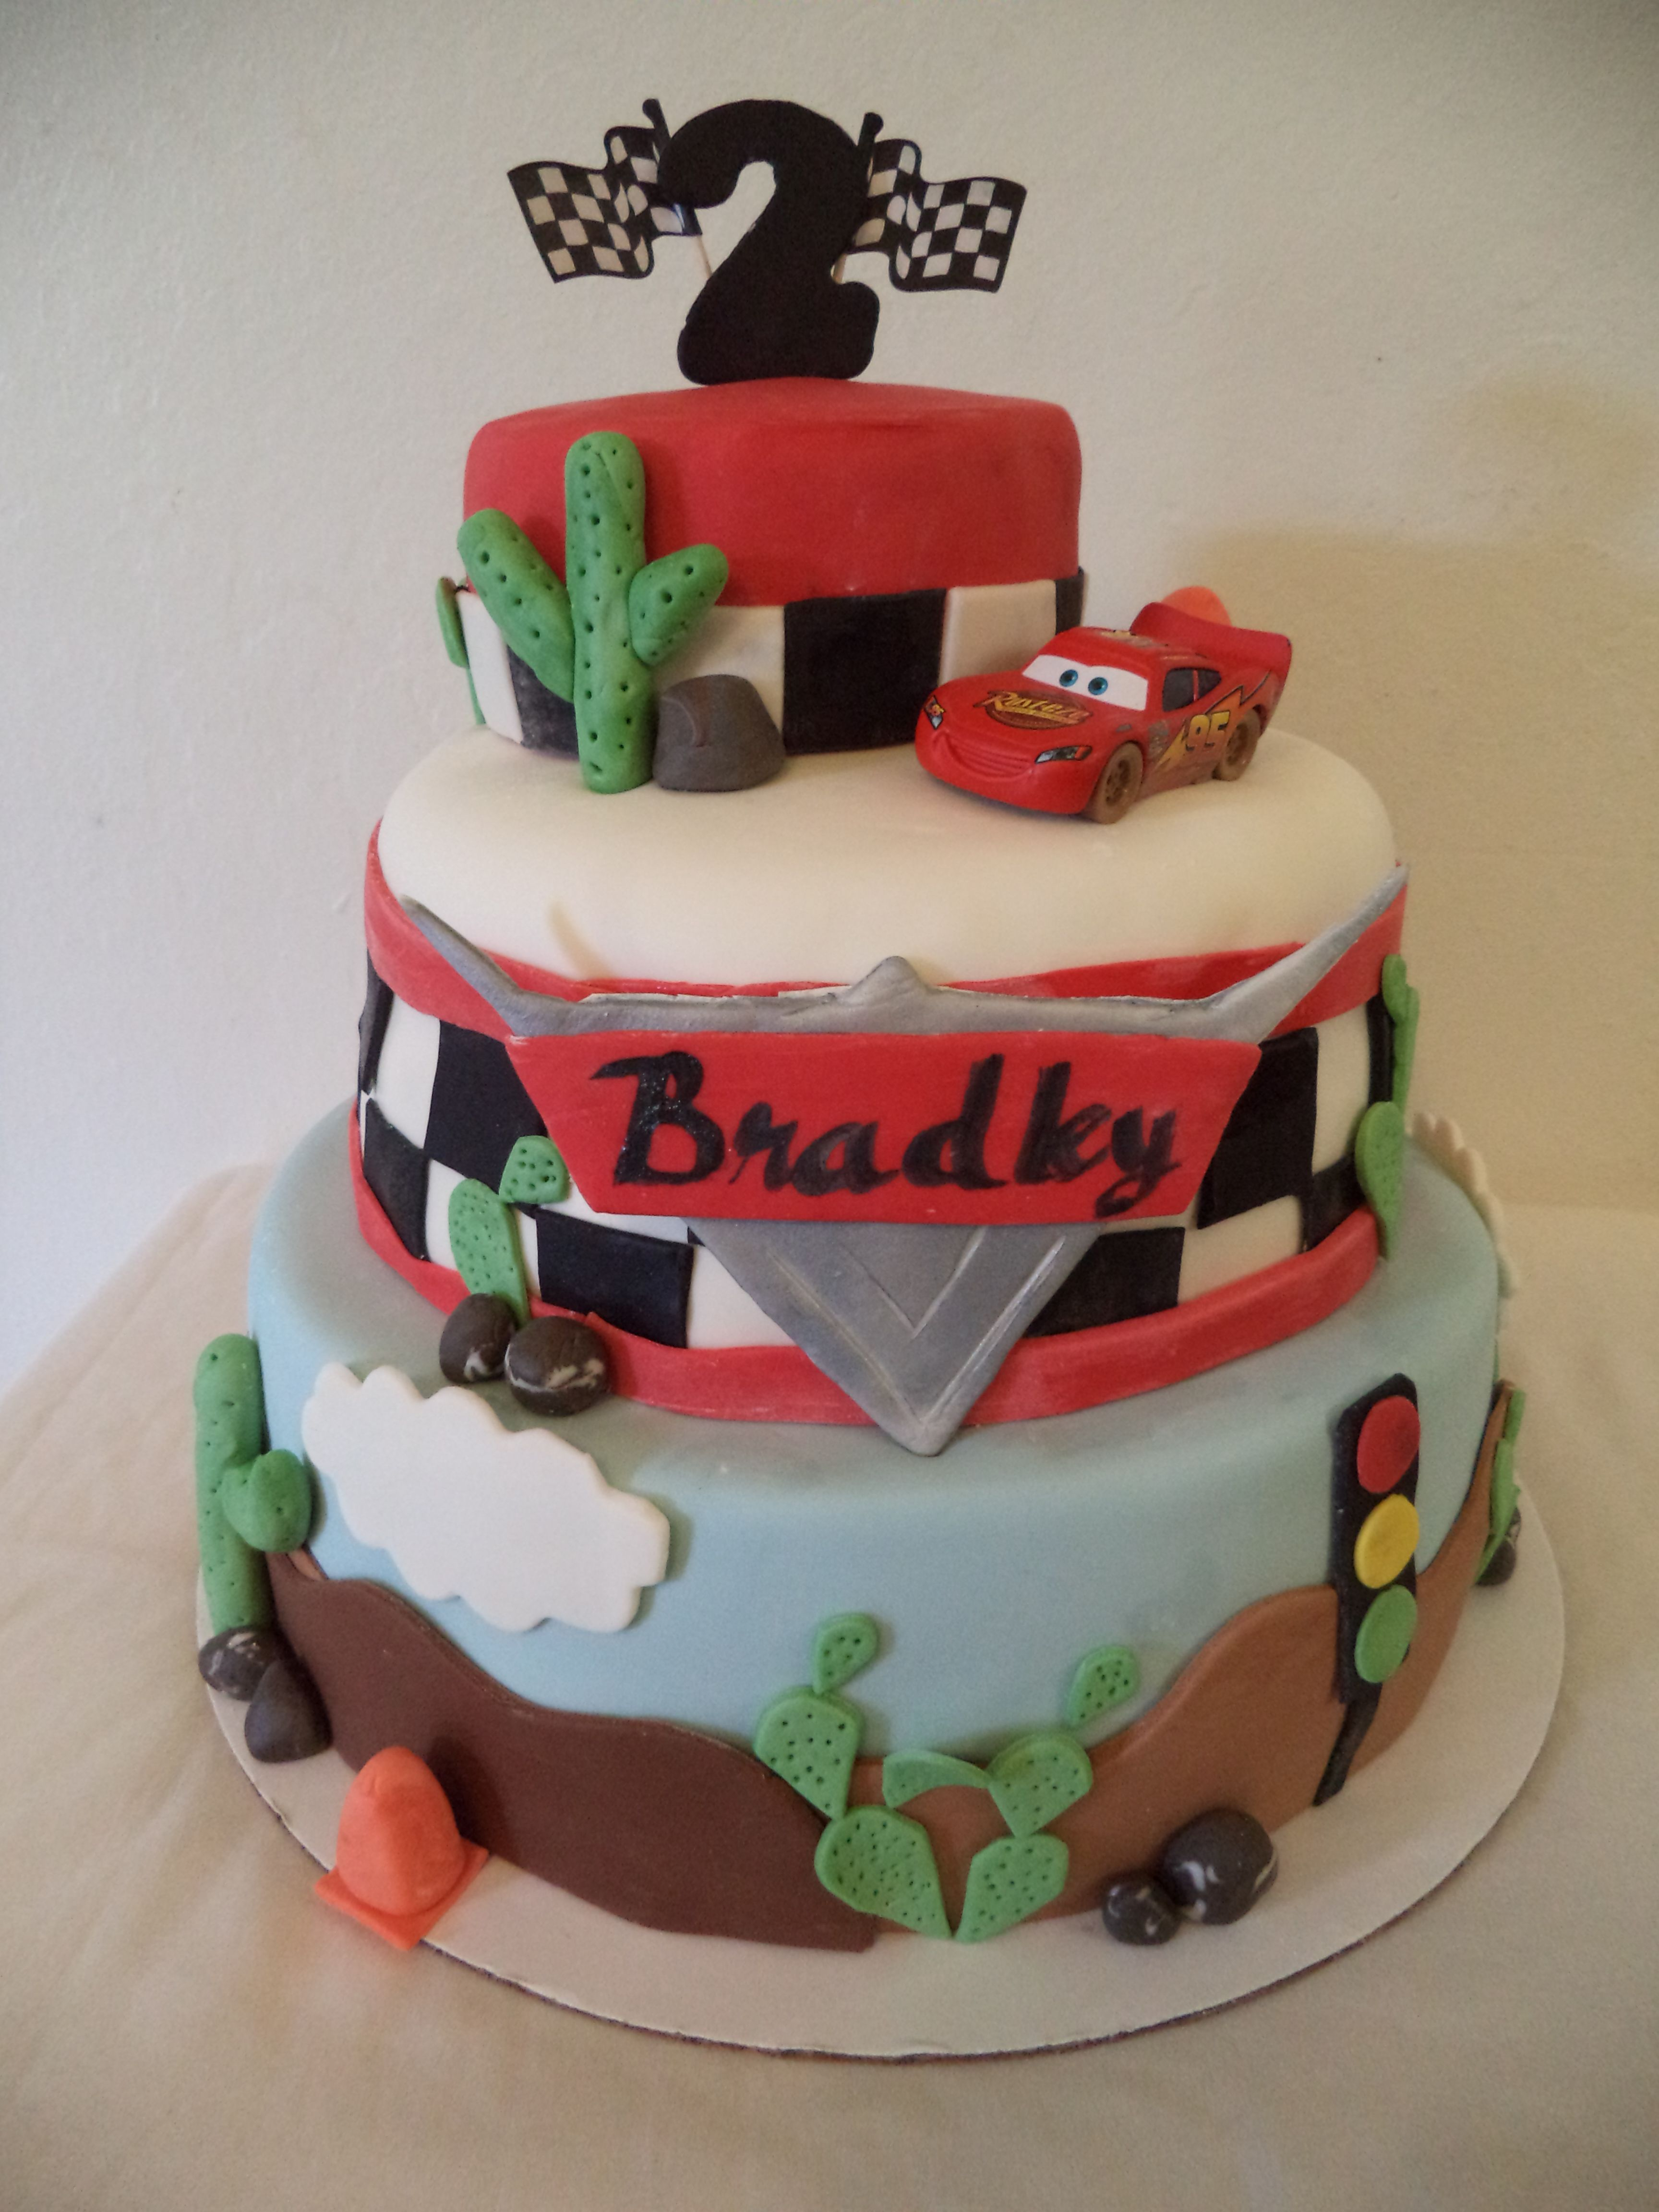 - Special thanks to Bellaria Cakes Design. My nephew Bradley turned two and loves the Disney Cars movie. There are sooo many cakes out there, this one caught my eye. :)